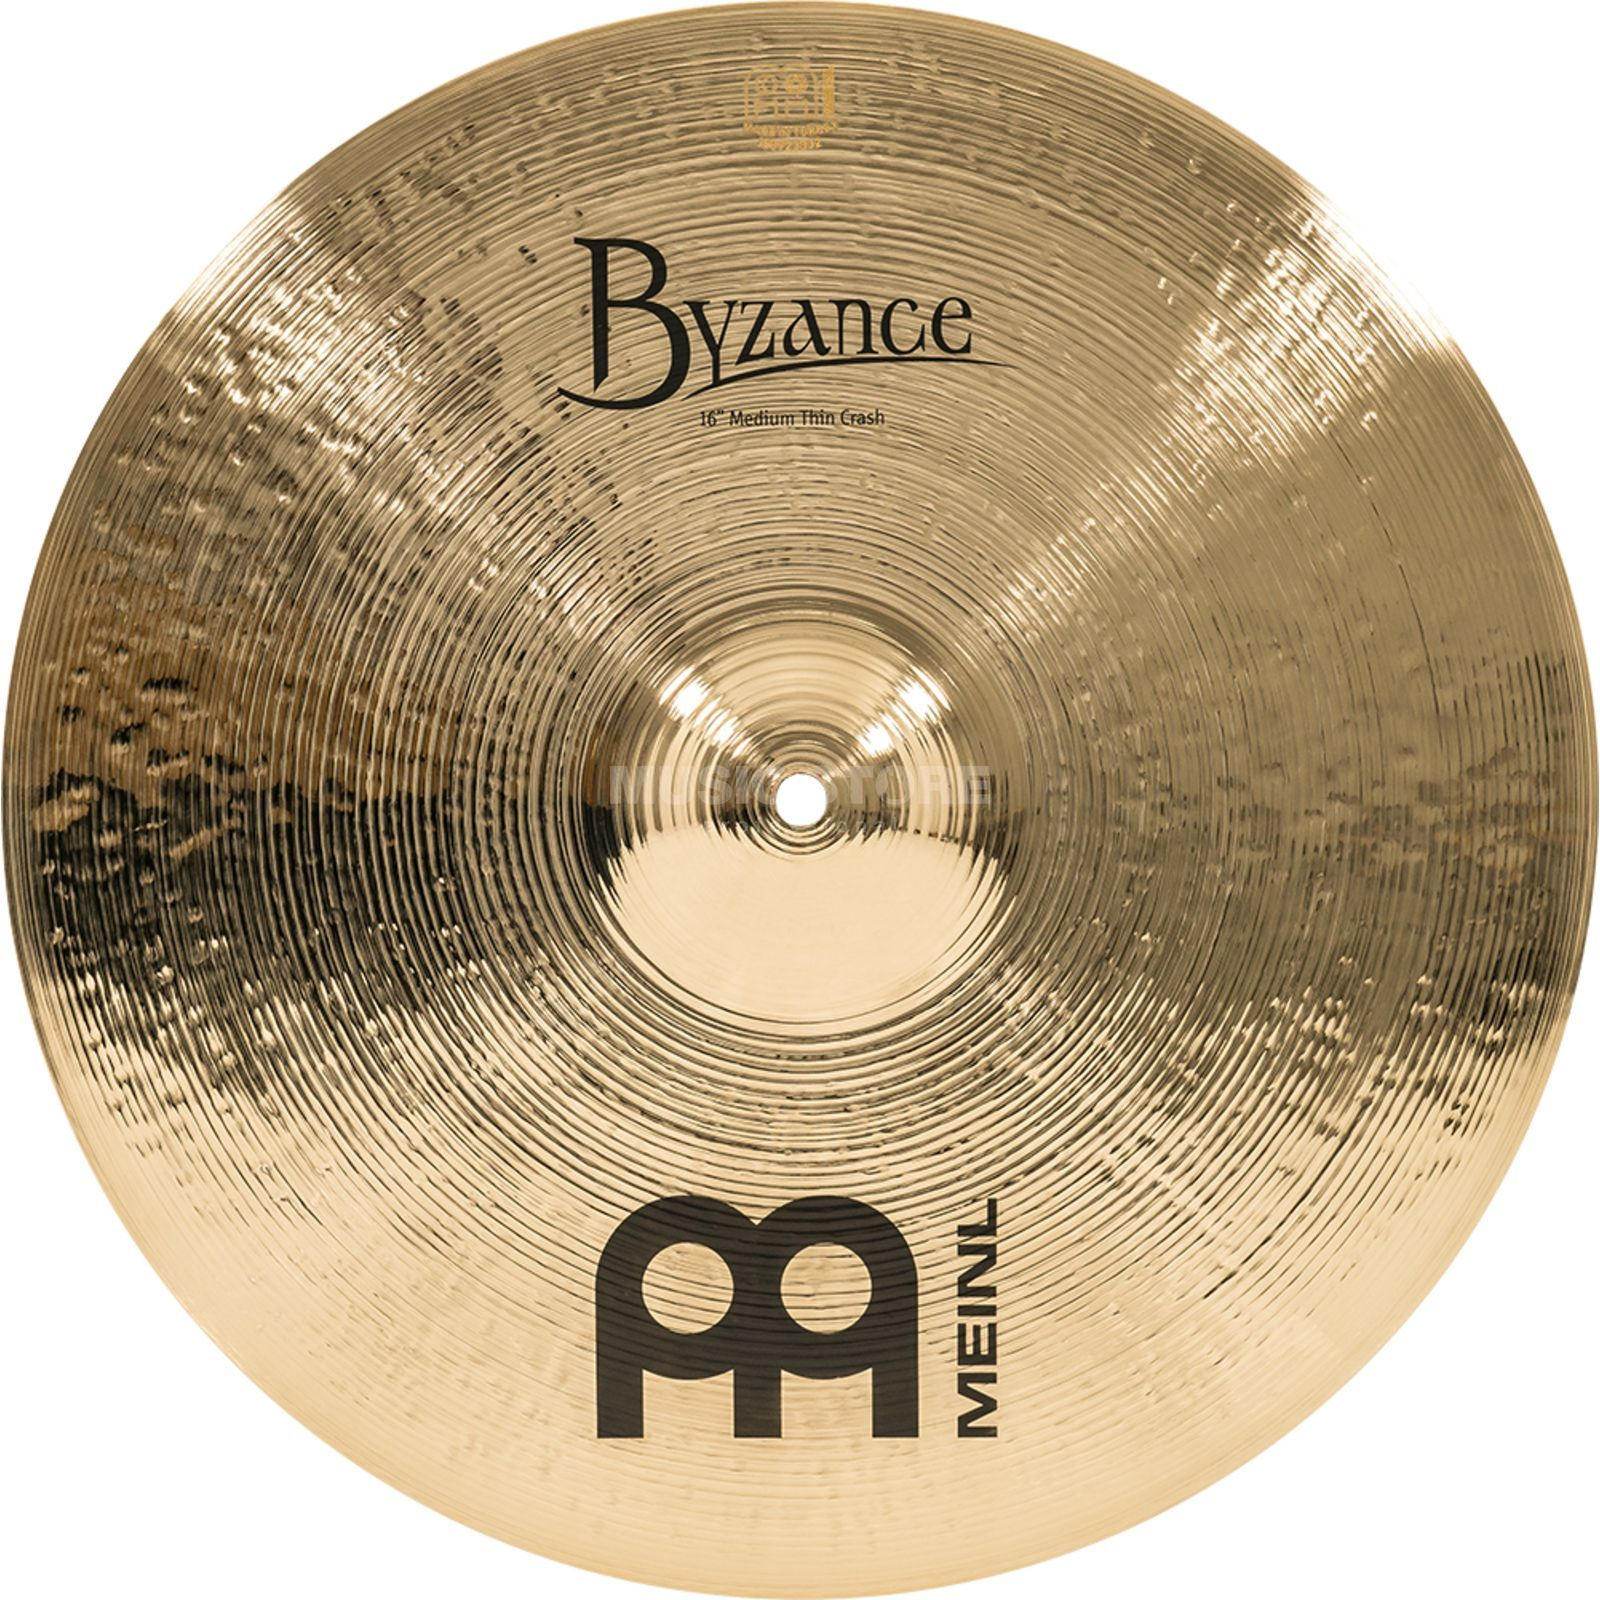 "Meinl Byzance Medium Thin Crash 16"" B16MTC-B, Brilliant Produktbillede"